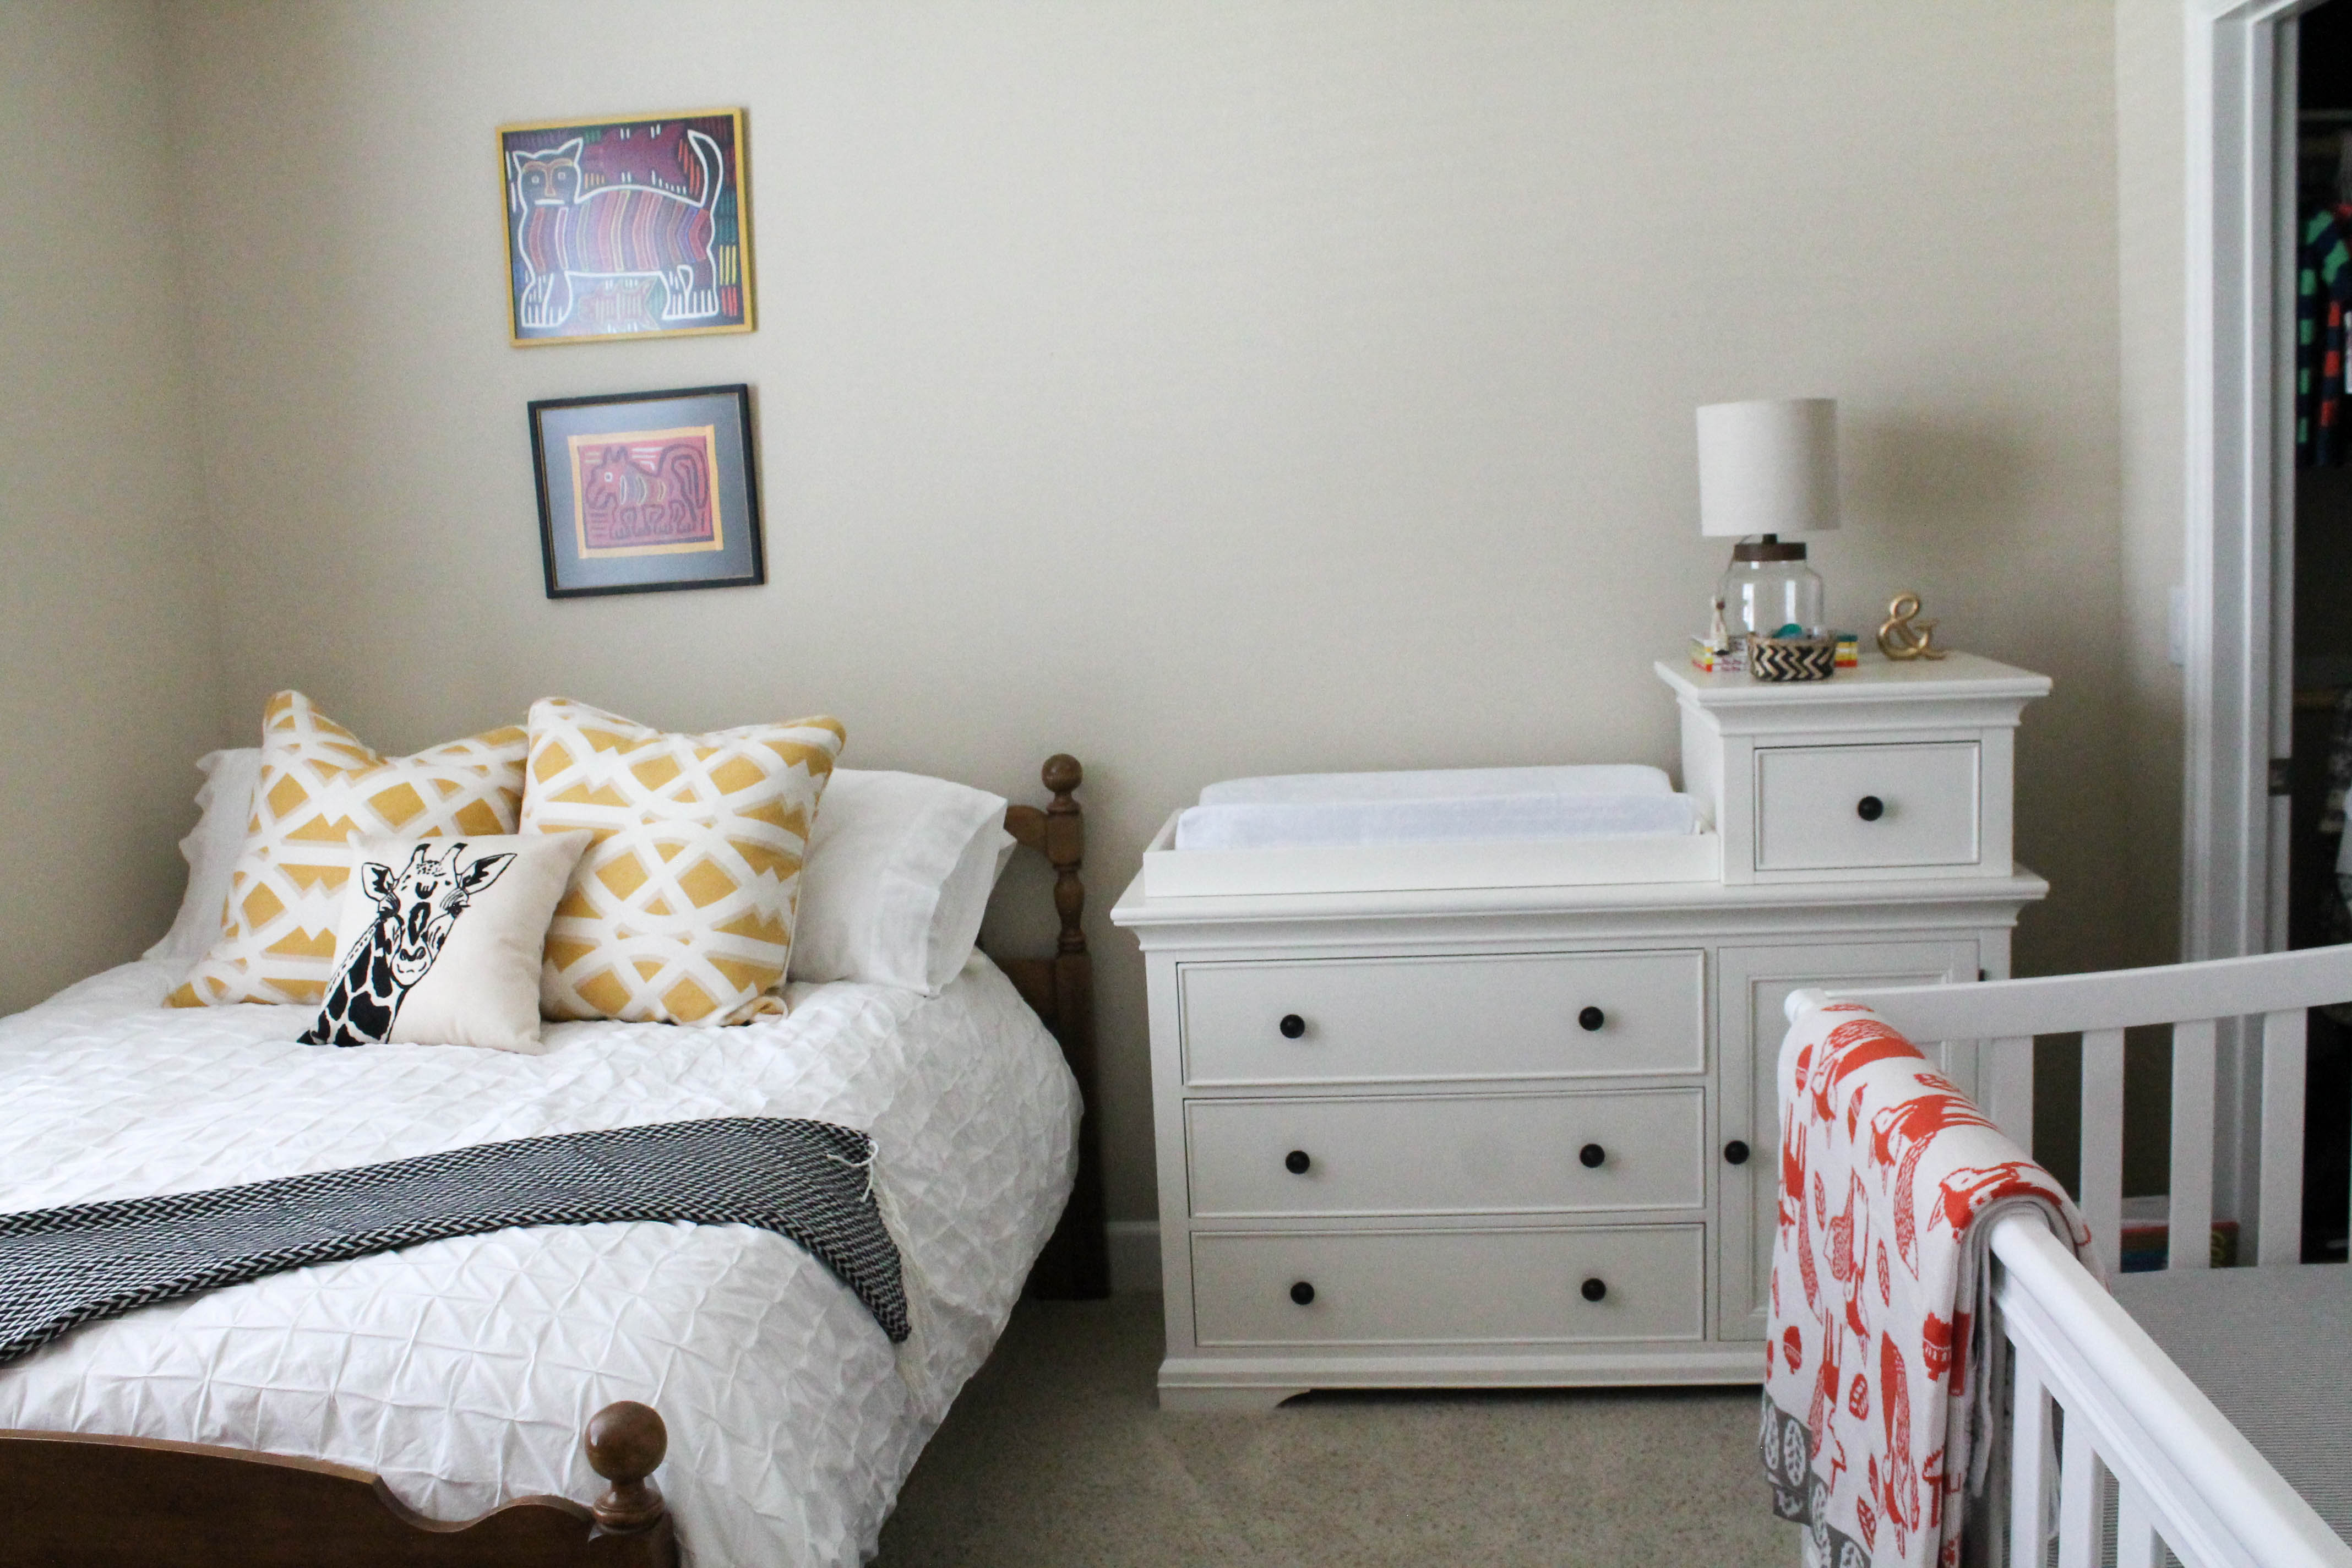 her barn pottery lhuillier about barns new monique the us articles kids room tells collection find whimsical